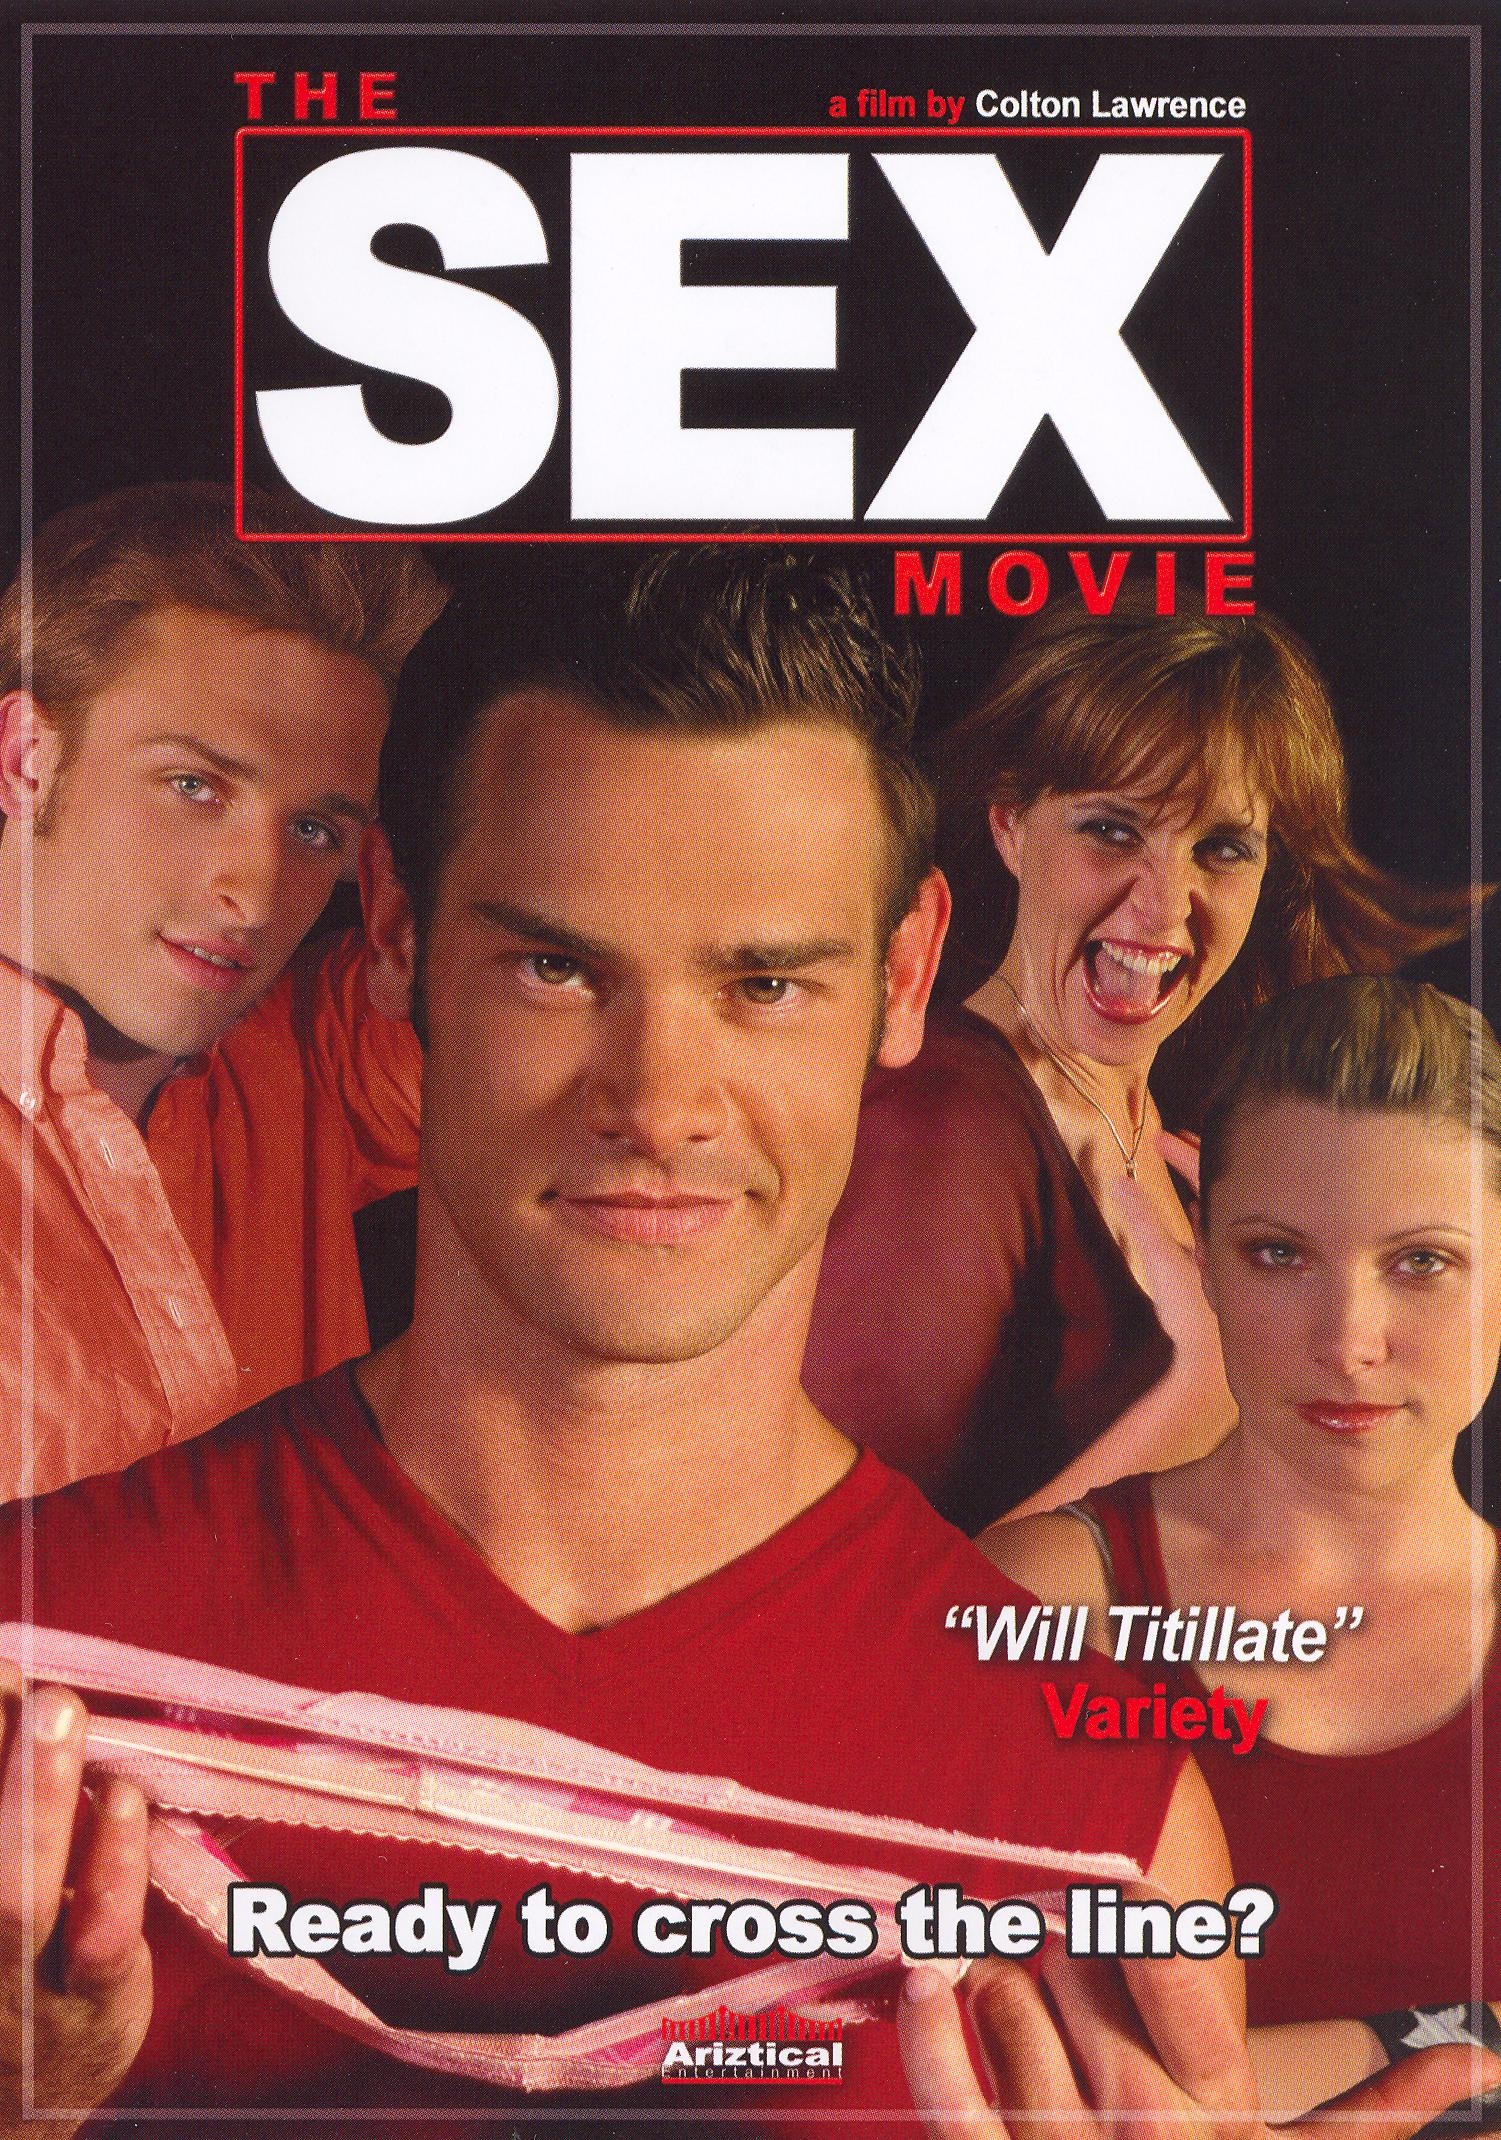 The Sex Movie (2006) - Colton Lawrence | Synopsis